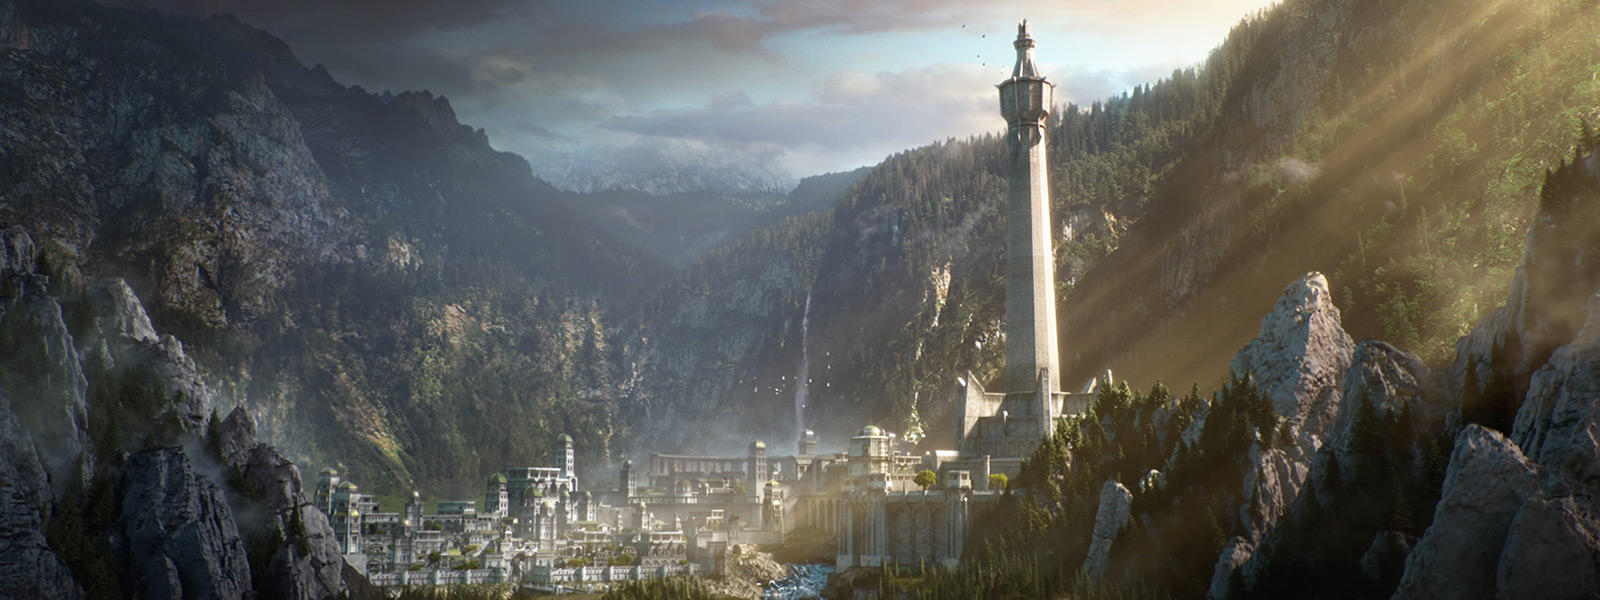 Sun shining on the white marble city of Minas Ithil from the game Middle-earth: Shadow of War